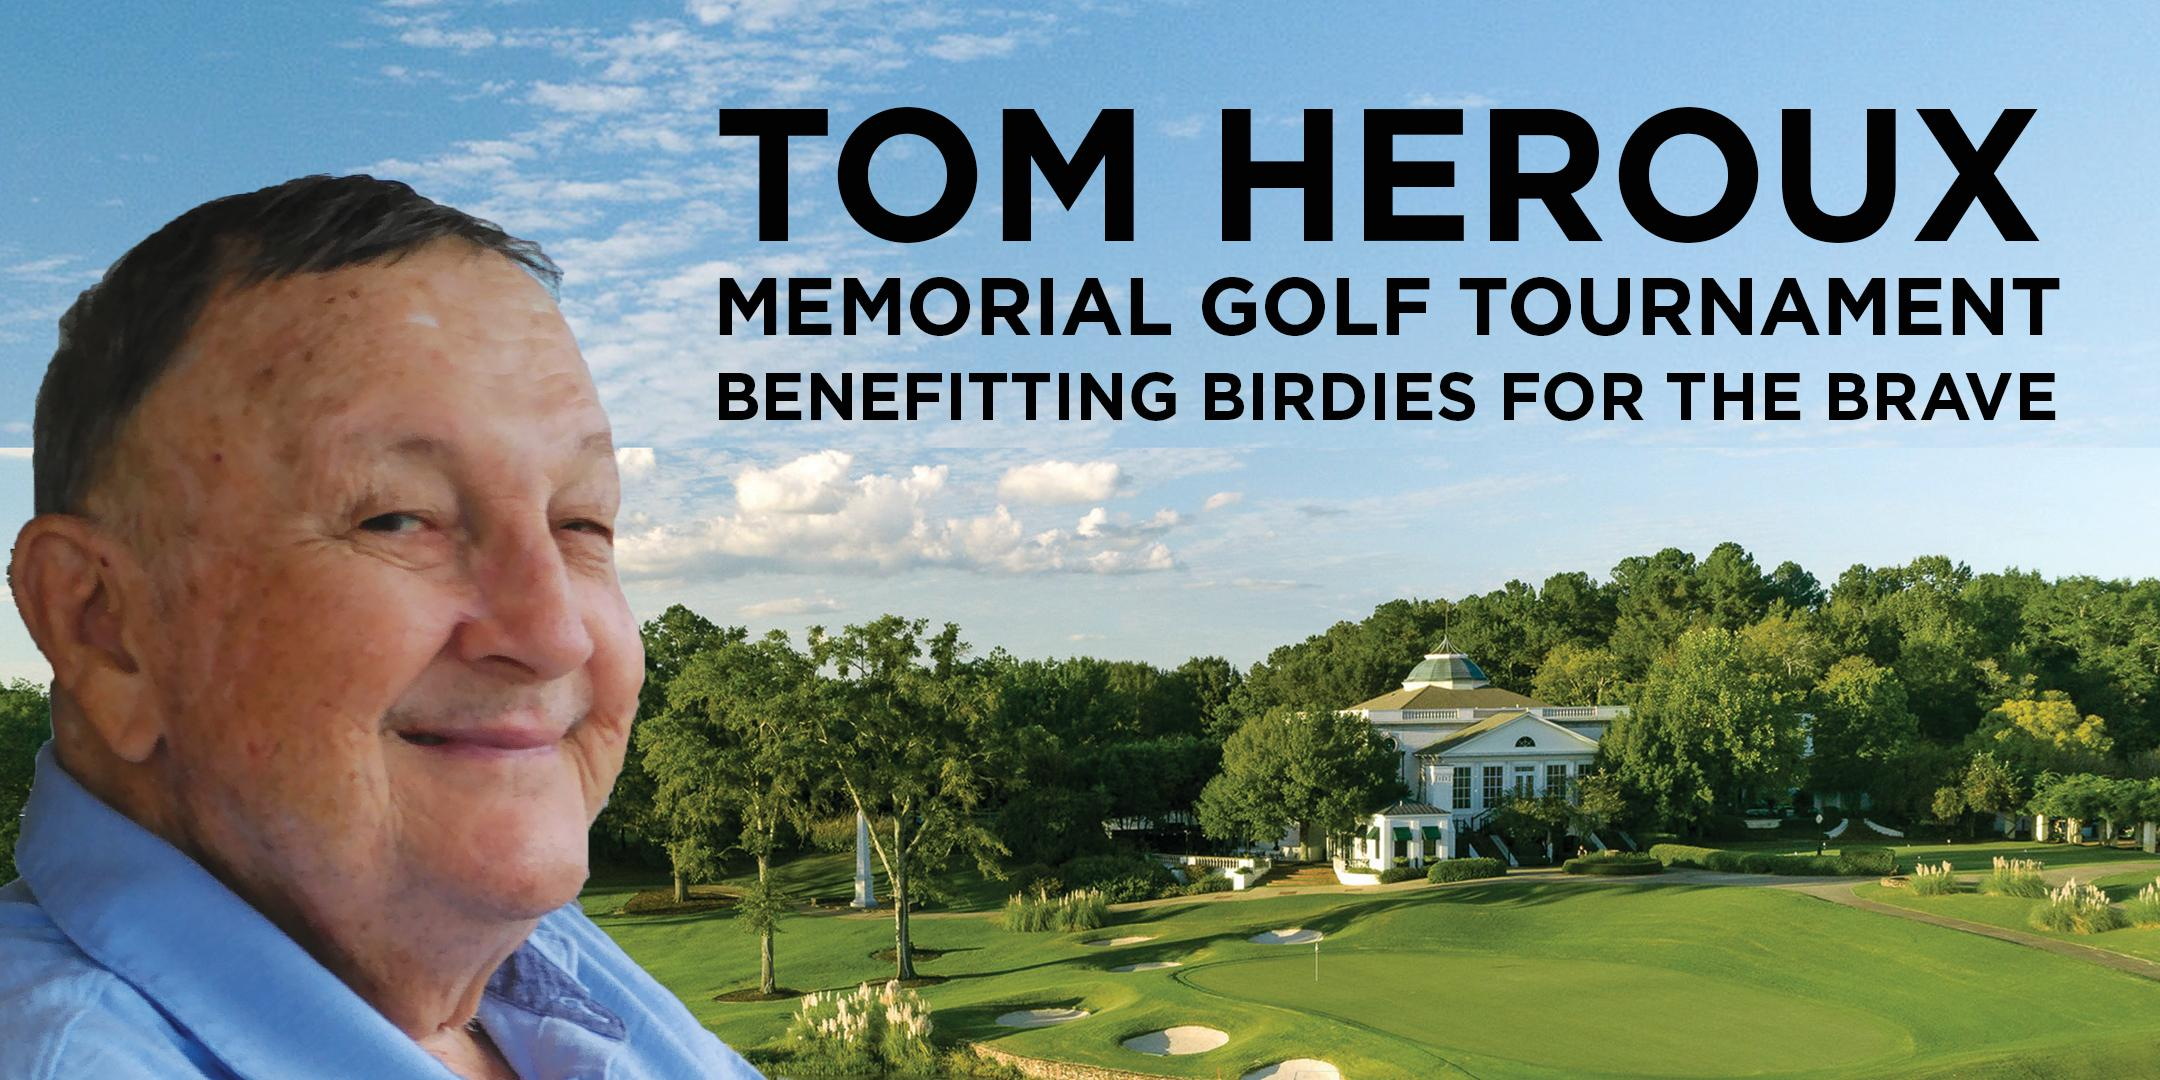 Tom Heroux Memorial Golf Tournament benefiting 'Birdies For The Brave'